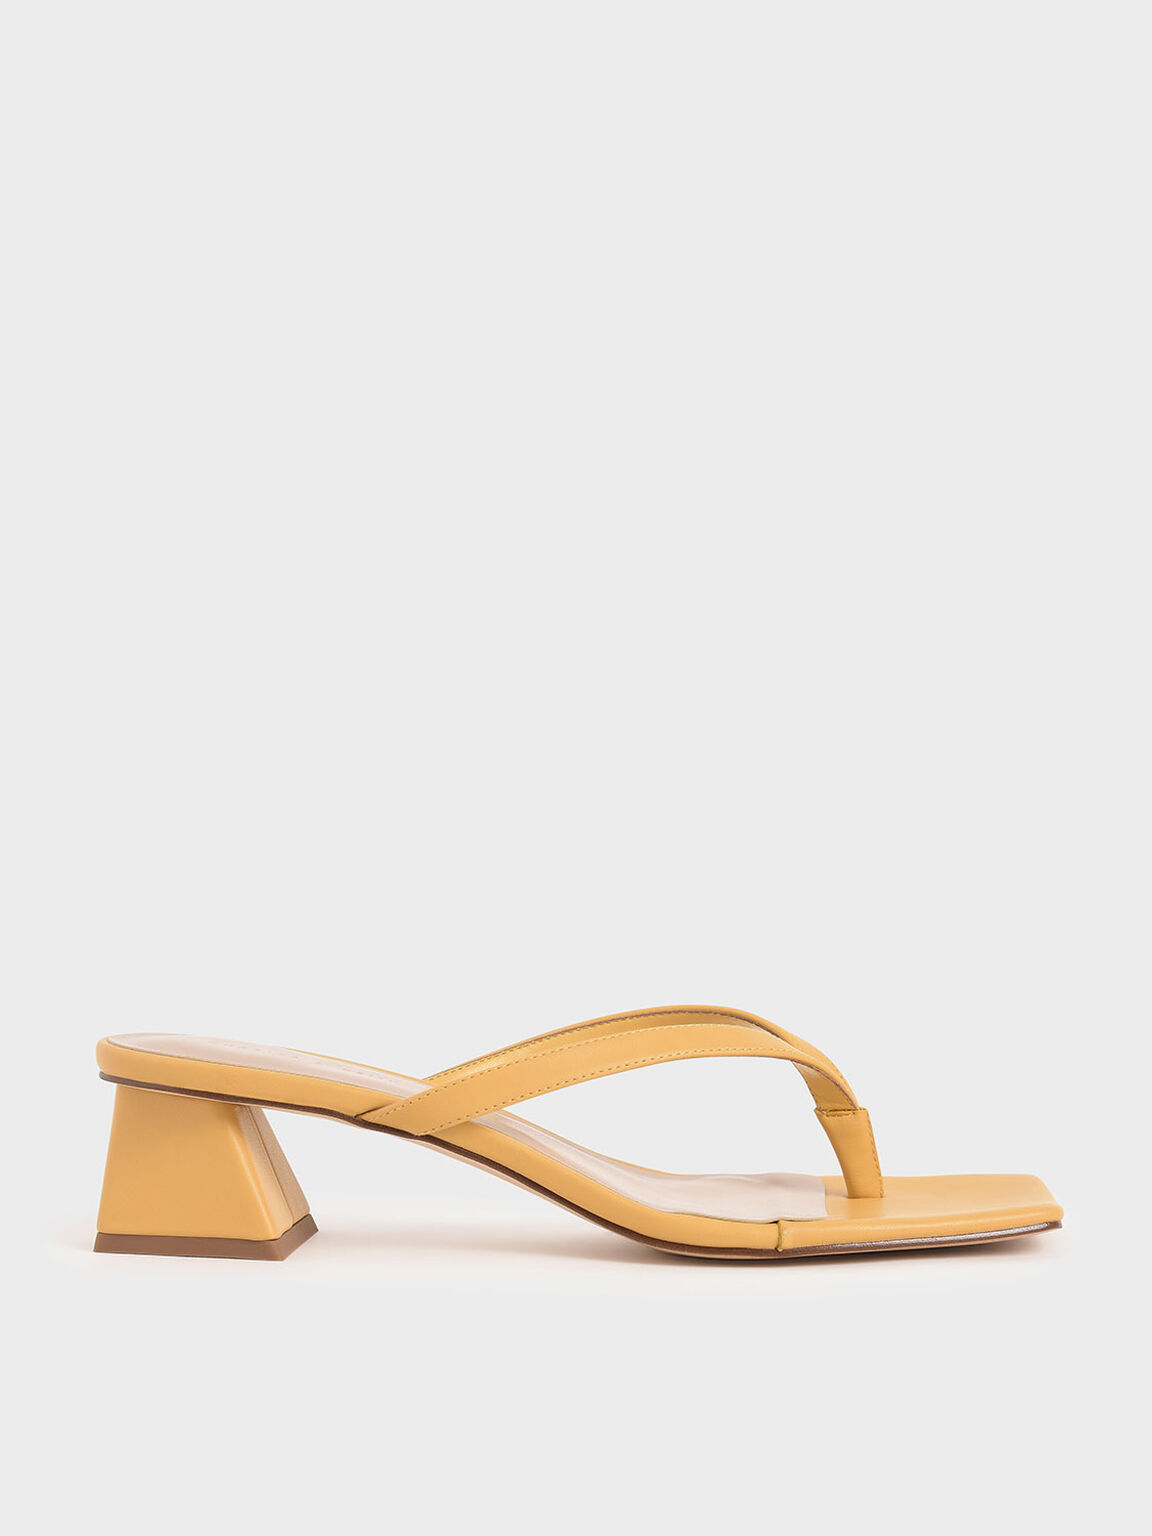 Thong Heeled Sandals, Yellow, hi-res